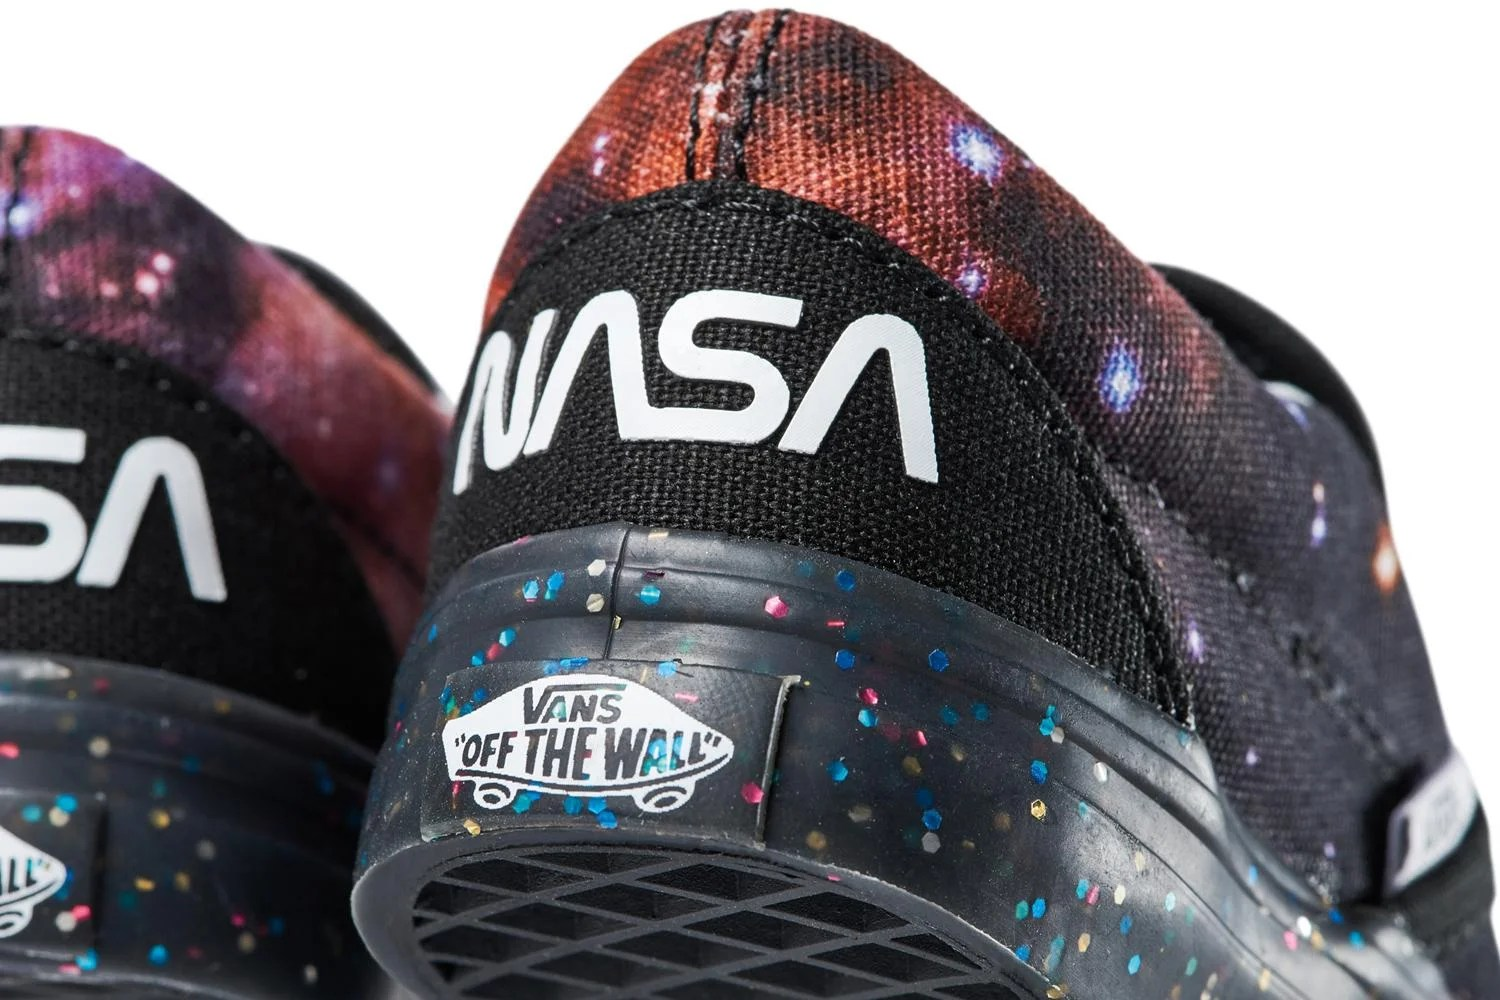 Vans and Nasa have teamed up to create a capsule